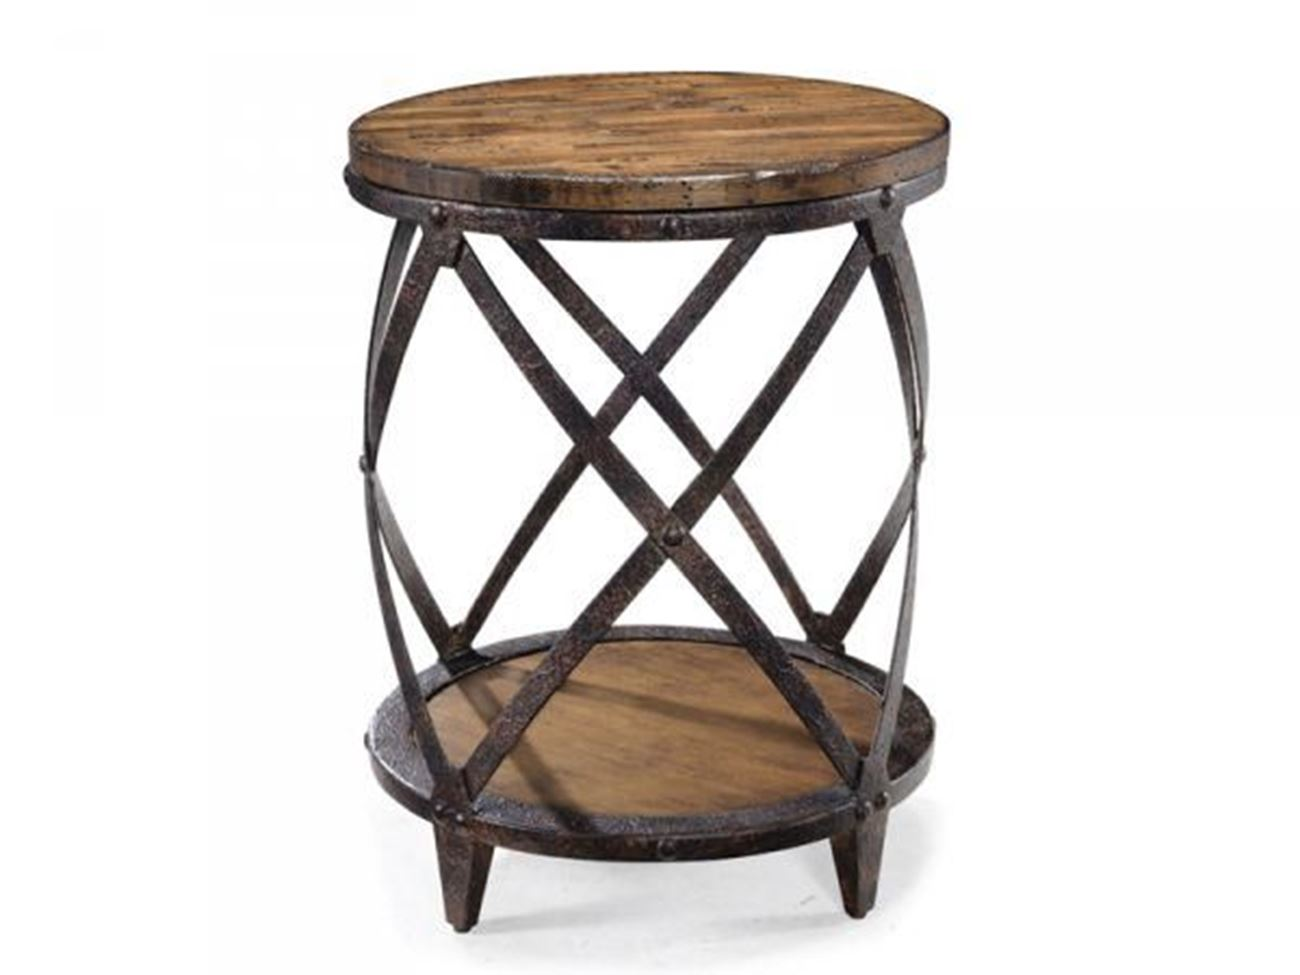 pinebrook round accent table woodstock furniture mattress iron ture amazing coffee tables large with storage chest timber trestle legs high bedside traditional dining room ikea